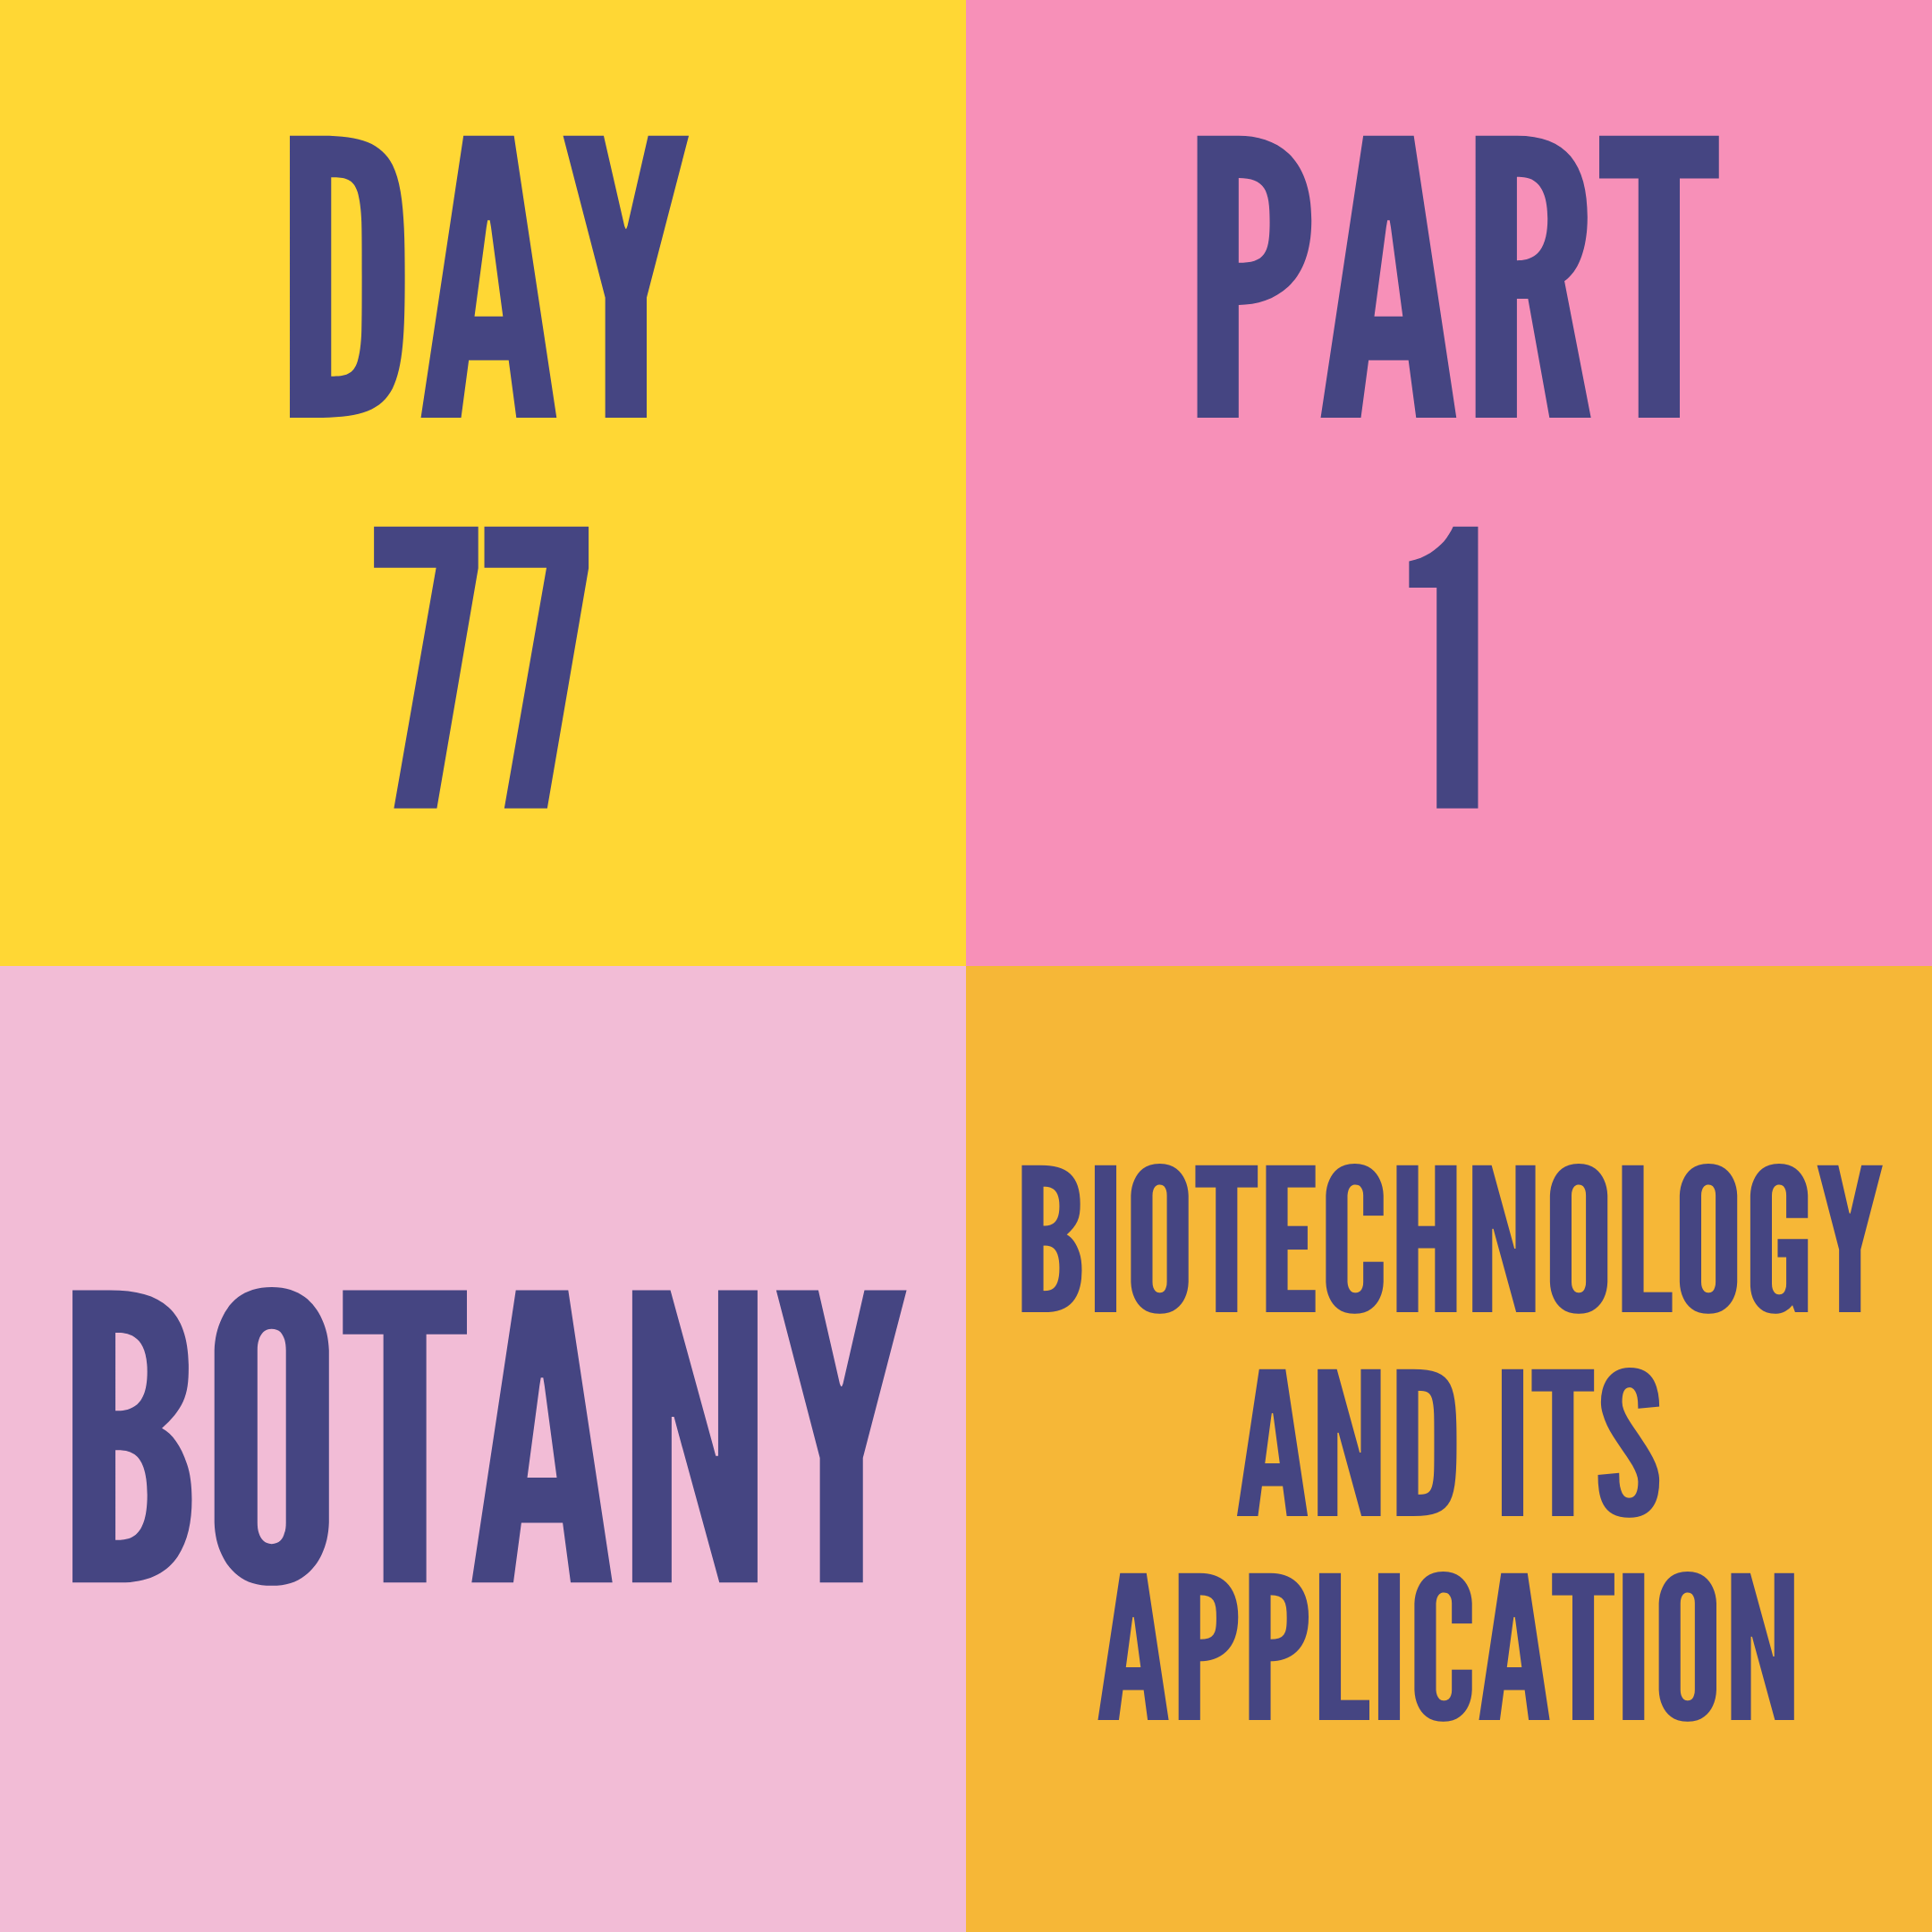 DAY-77 PART-1 BIOTECHNOLOGY AND ITS APPLICATION